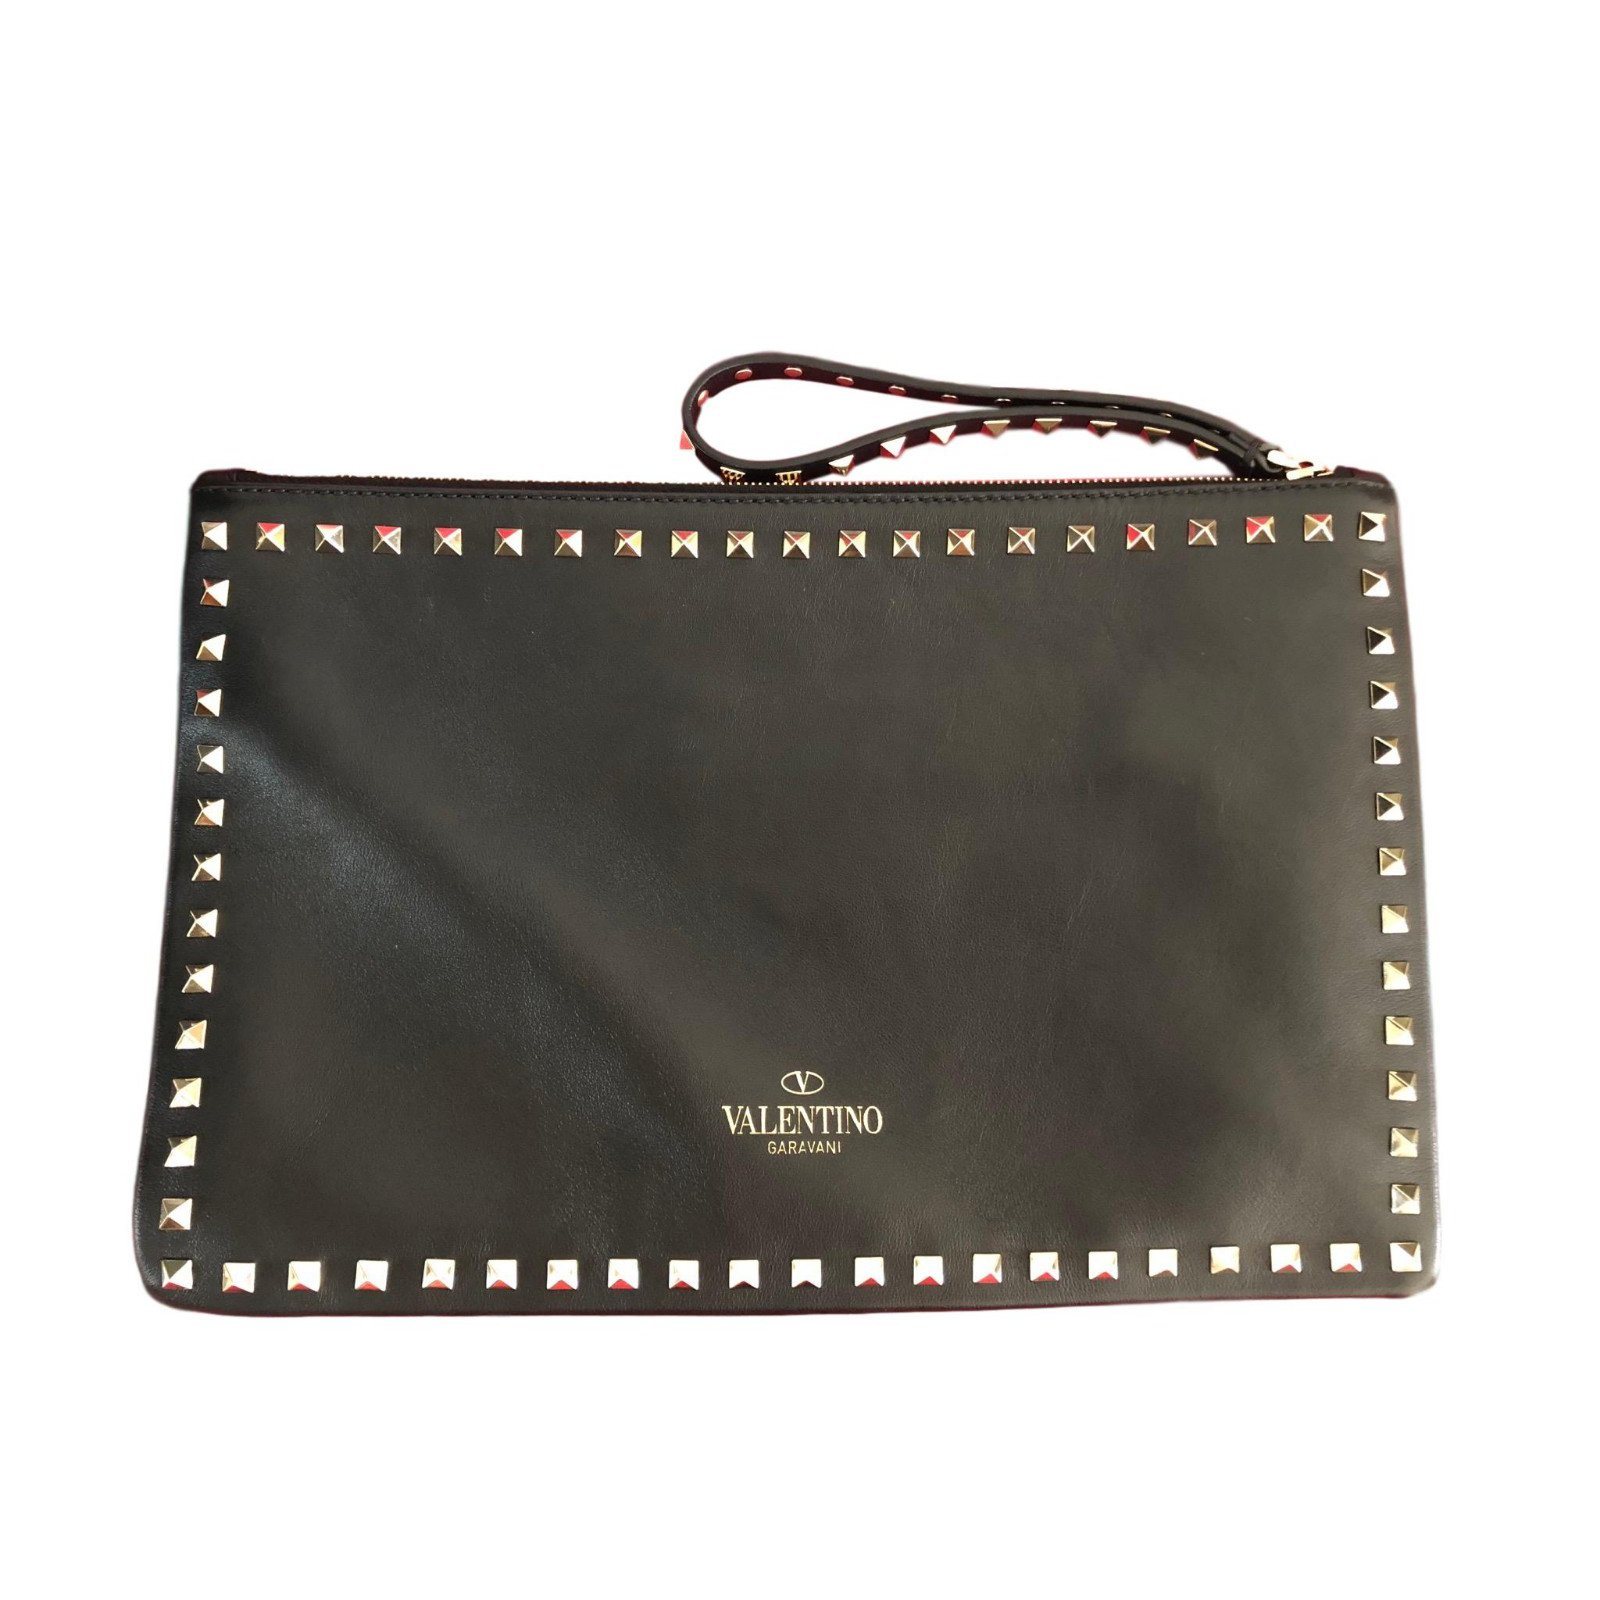 Valentino Rockstud Clutch Bag Bags Leather Black Ref 72727